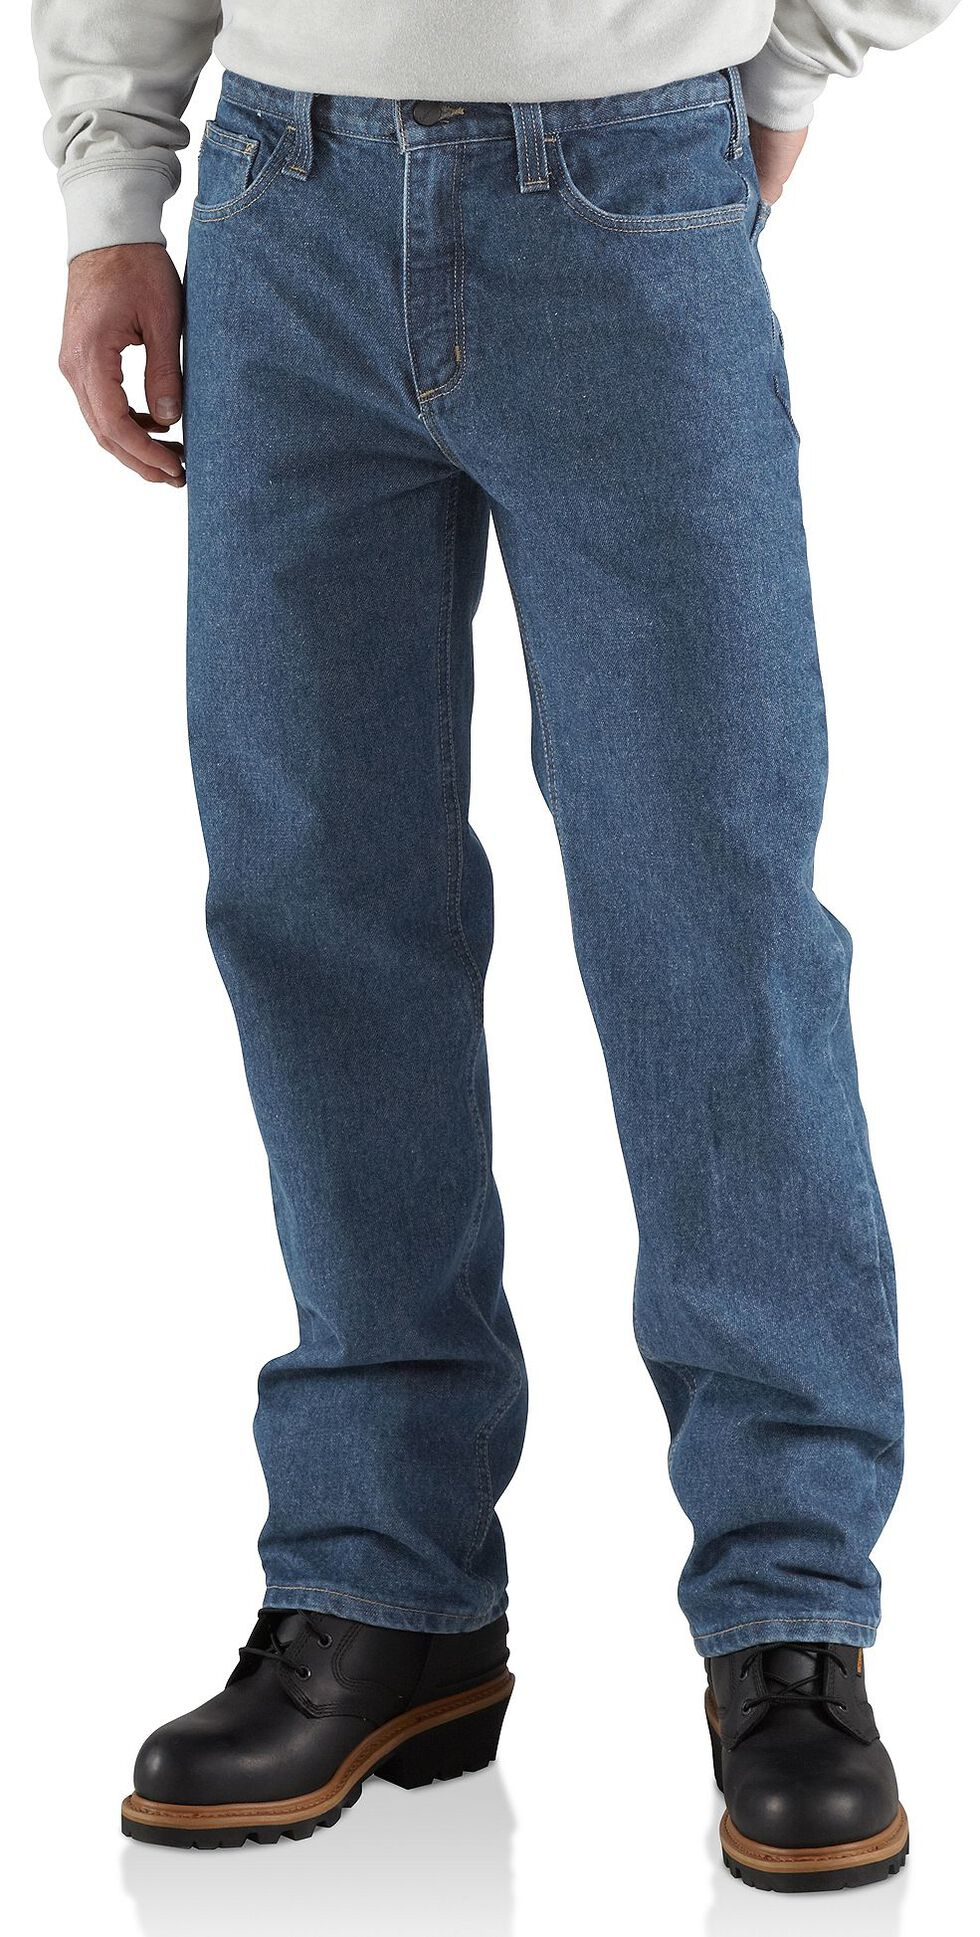 Carhartt Flame Resistant Utility Denim Relaxed Fit Jeans - Big & Tall, Midstone, hi-res